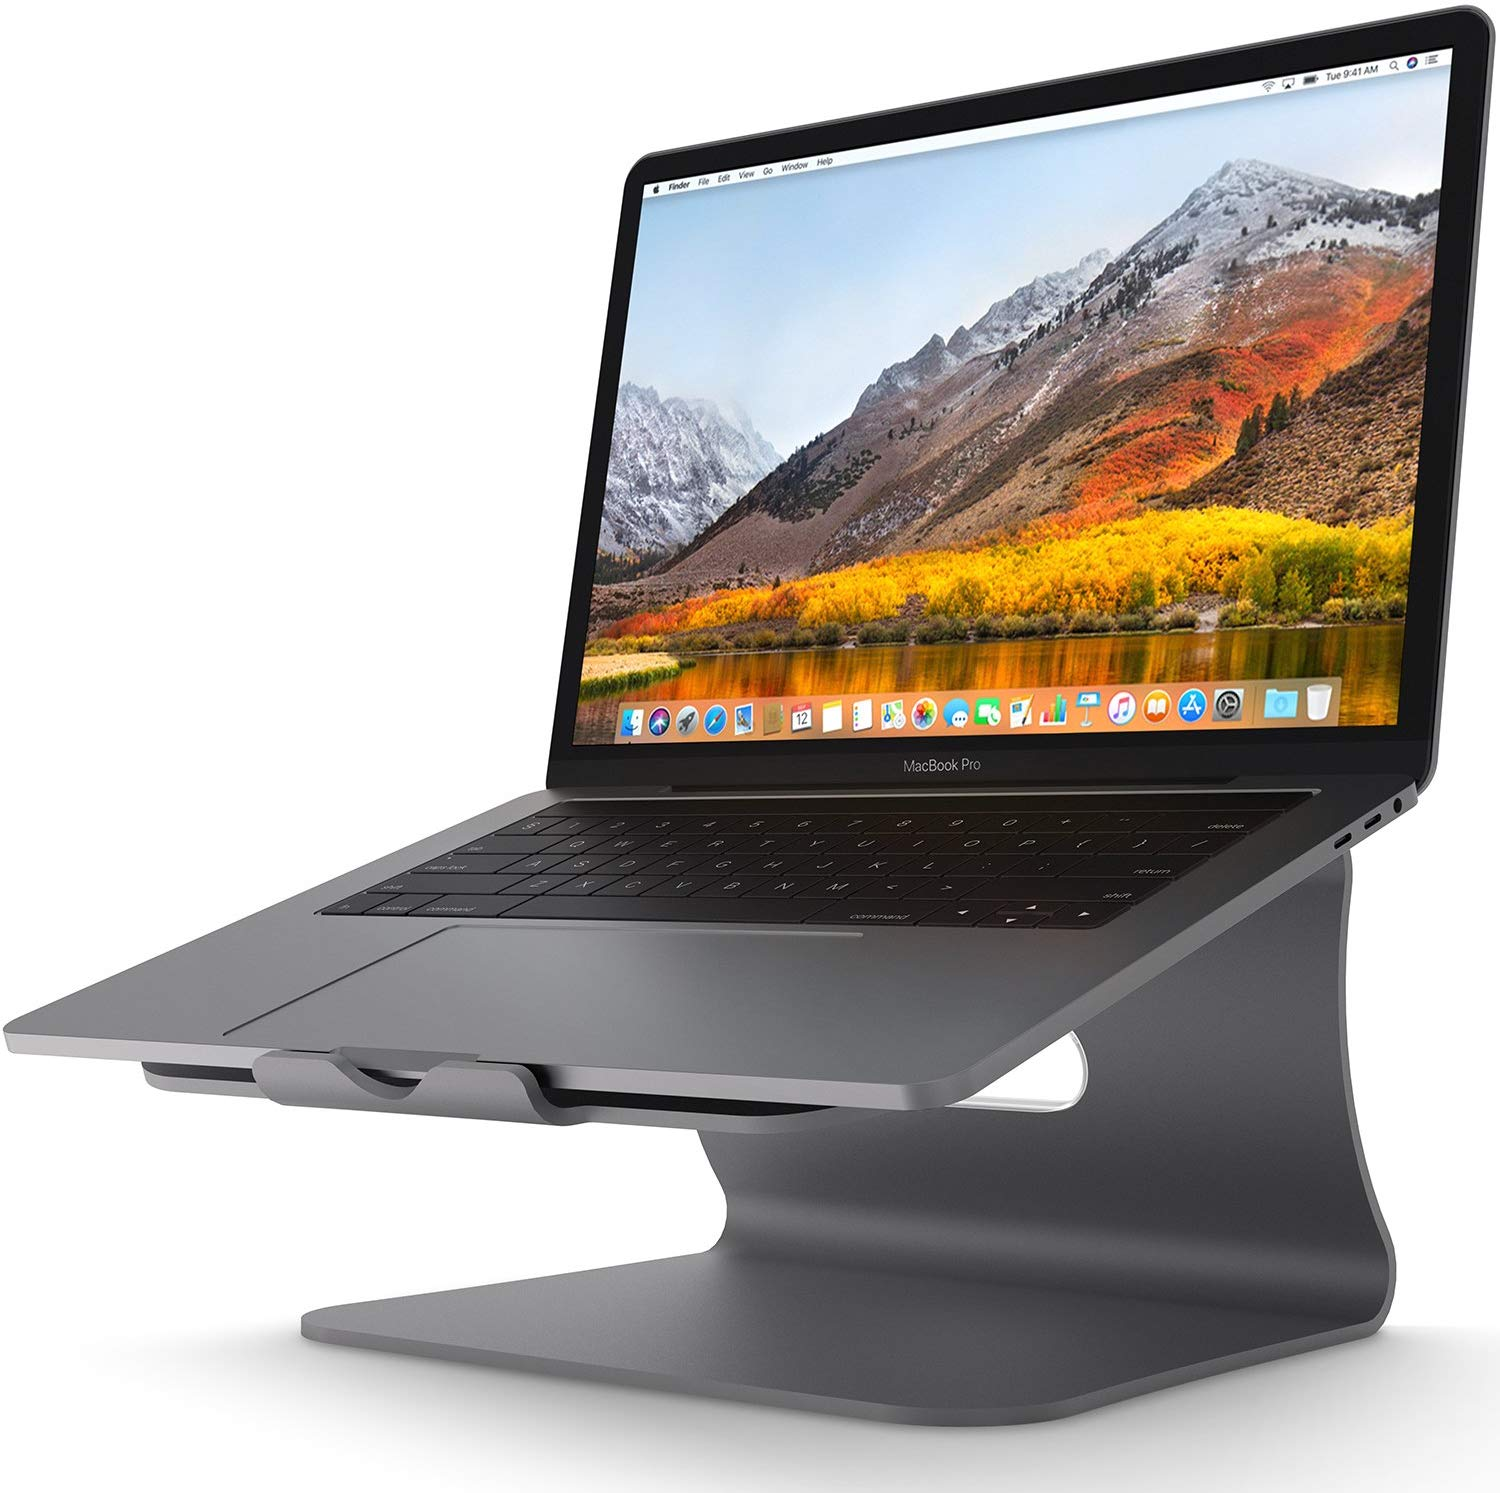 Laptop Stand - Bestand Aluminum Cooling Computer Stand: [Update Version] Stand, Holder for Apple MacBook Air, MacBook Pro, All Notebooks, Grey (Patented)